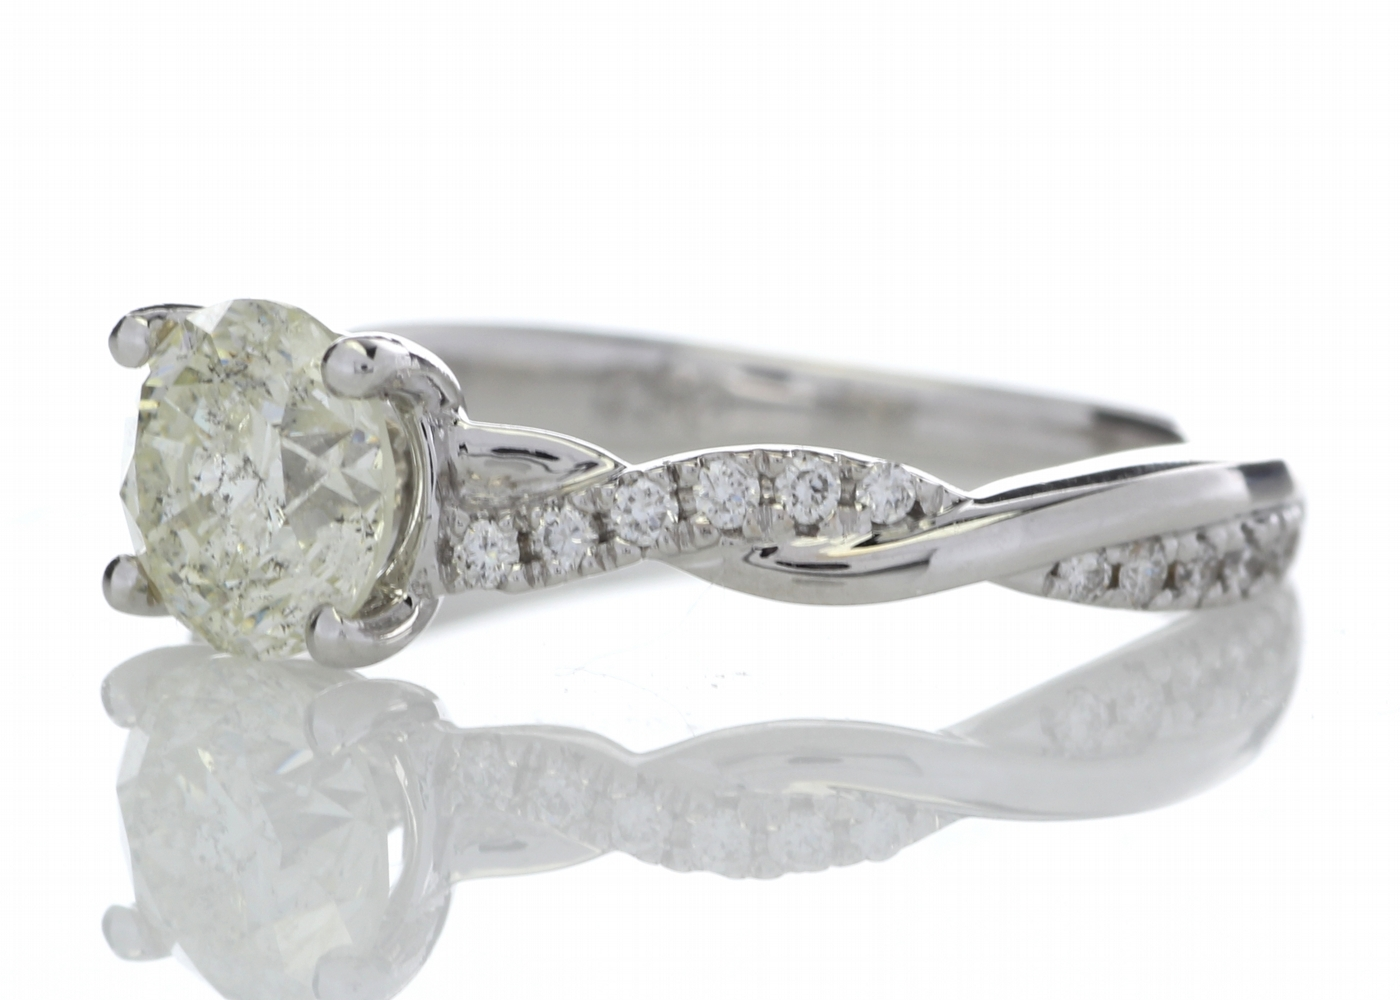 18k White Gold Diamond Ring With Waved Stone Set Shoulders 1.22 Carats - Image 2 of 5